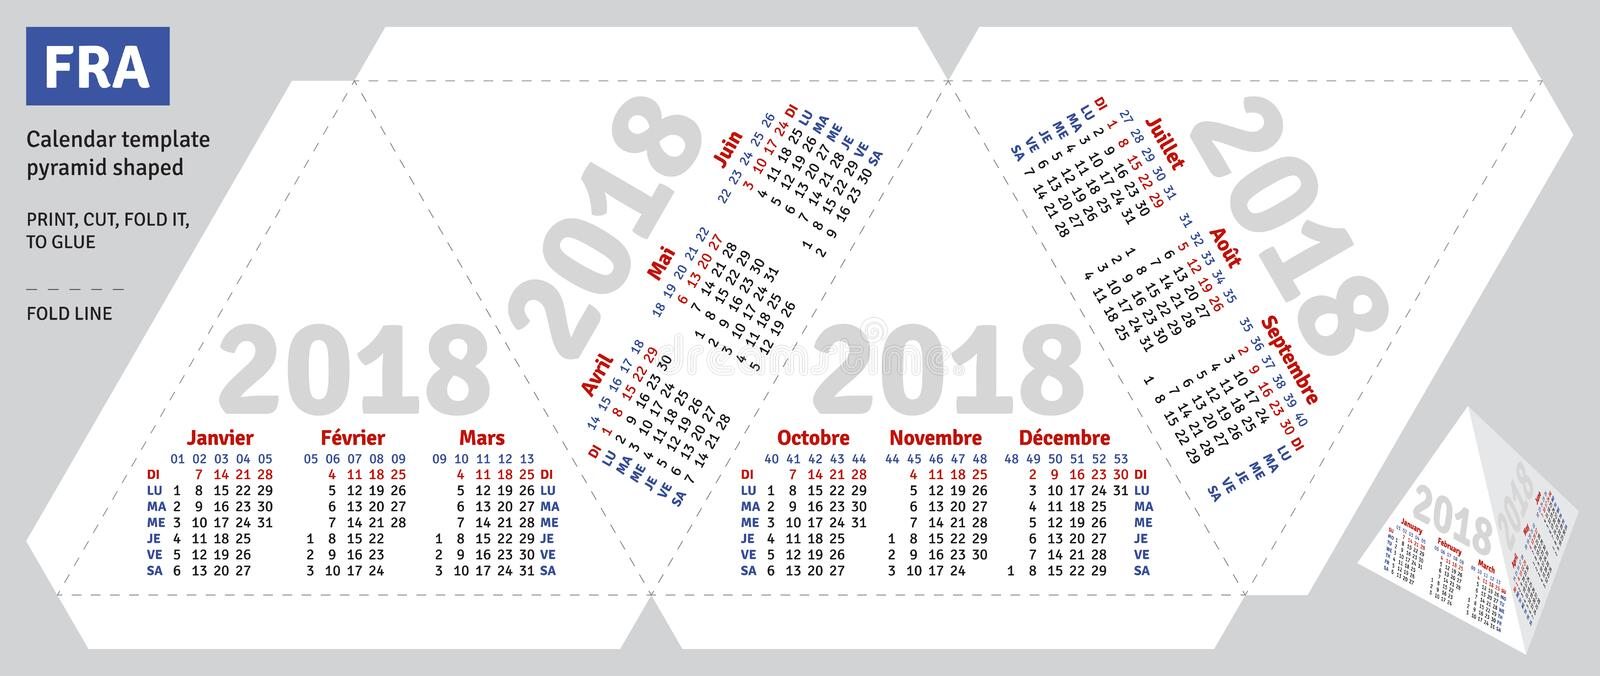 Template French Calendar 2018 Pyramid Shaped Stock Vector